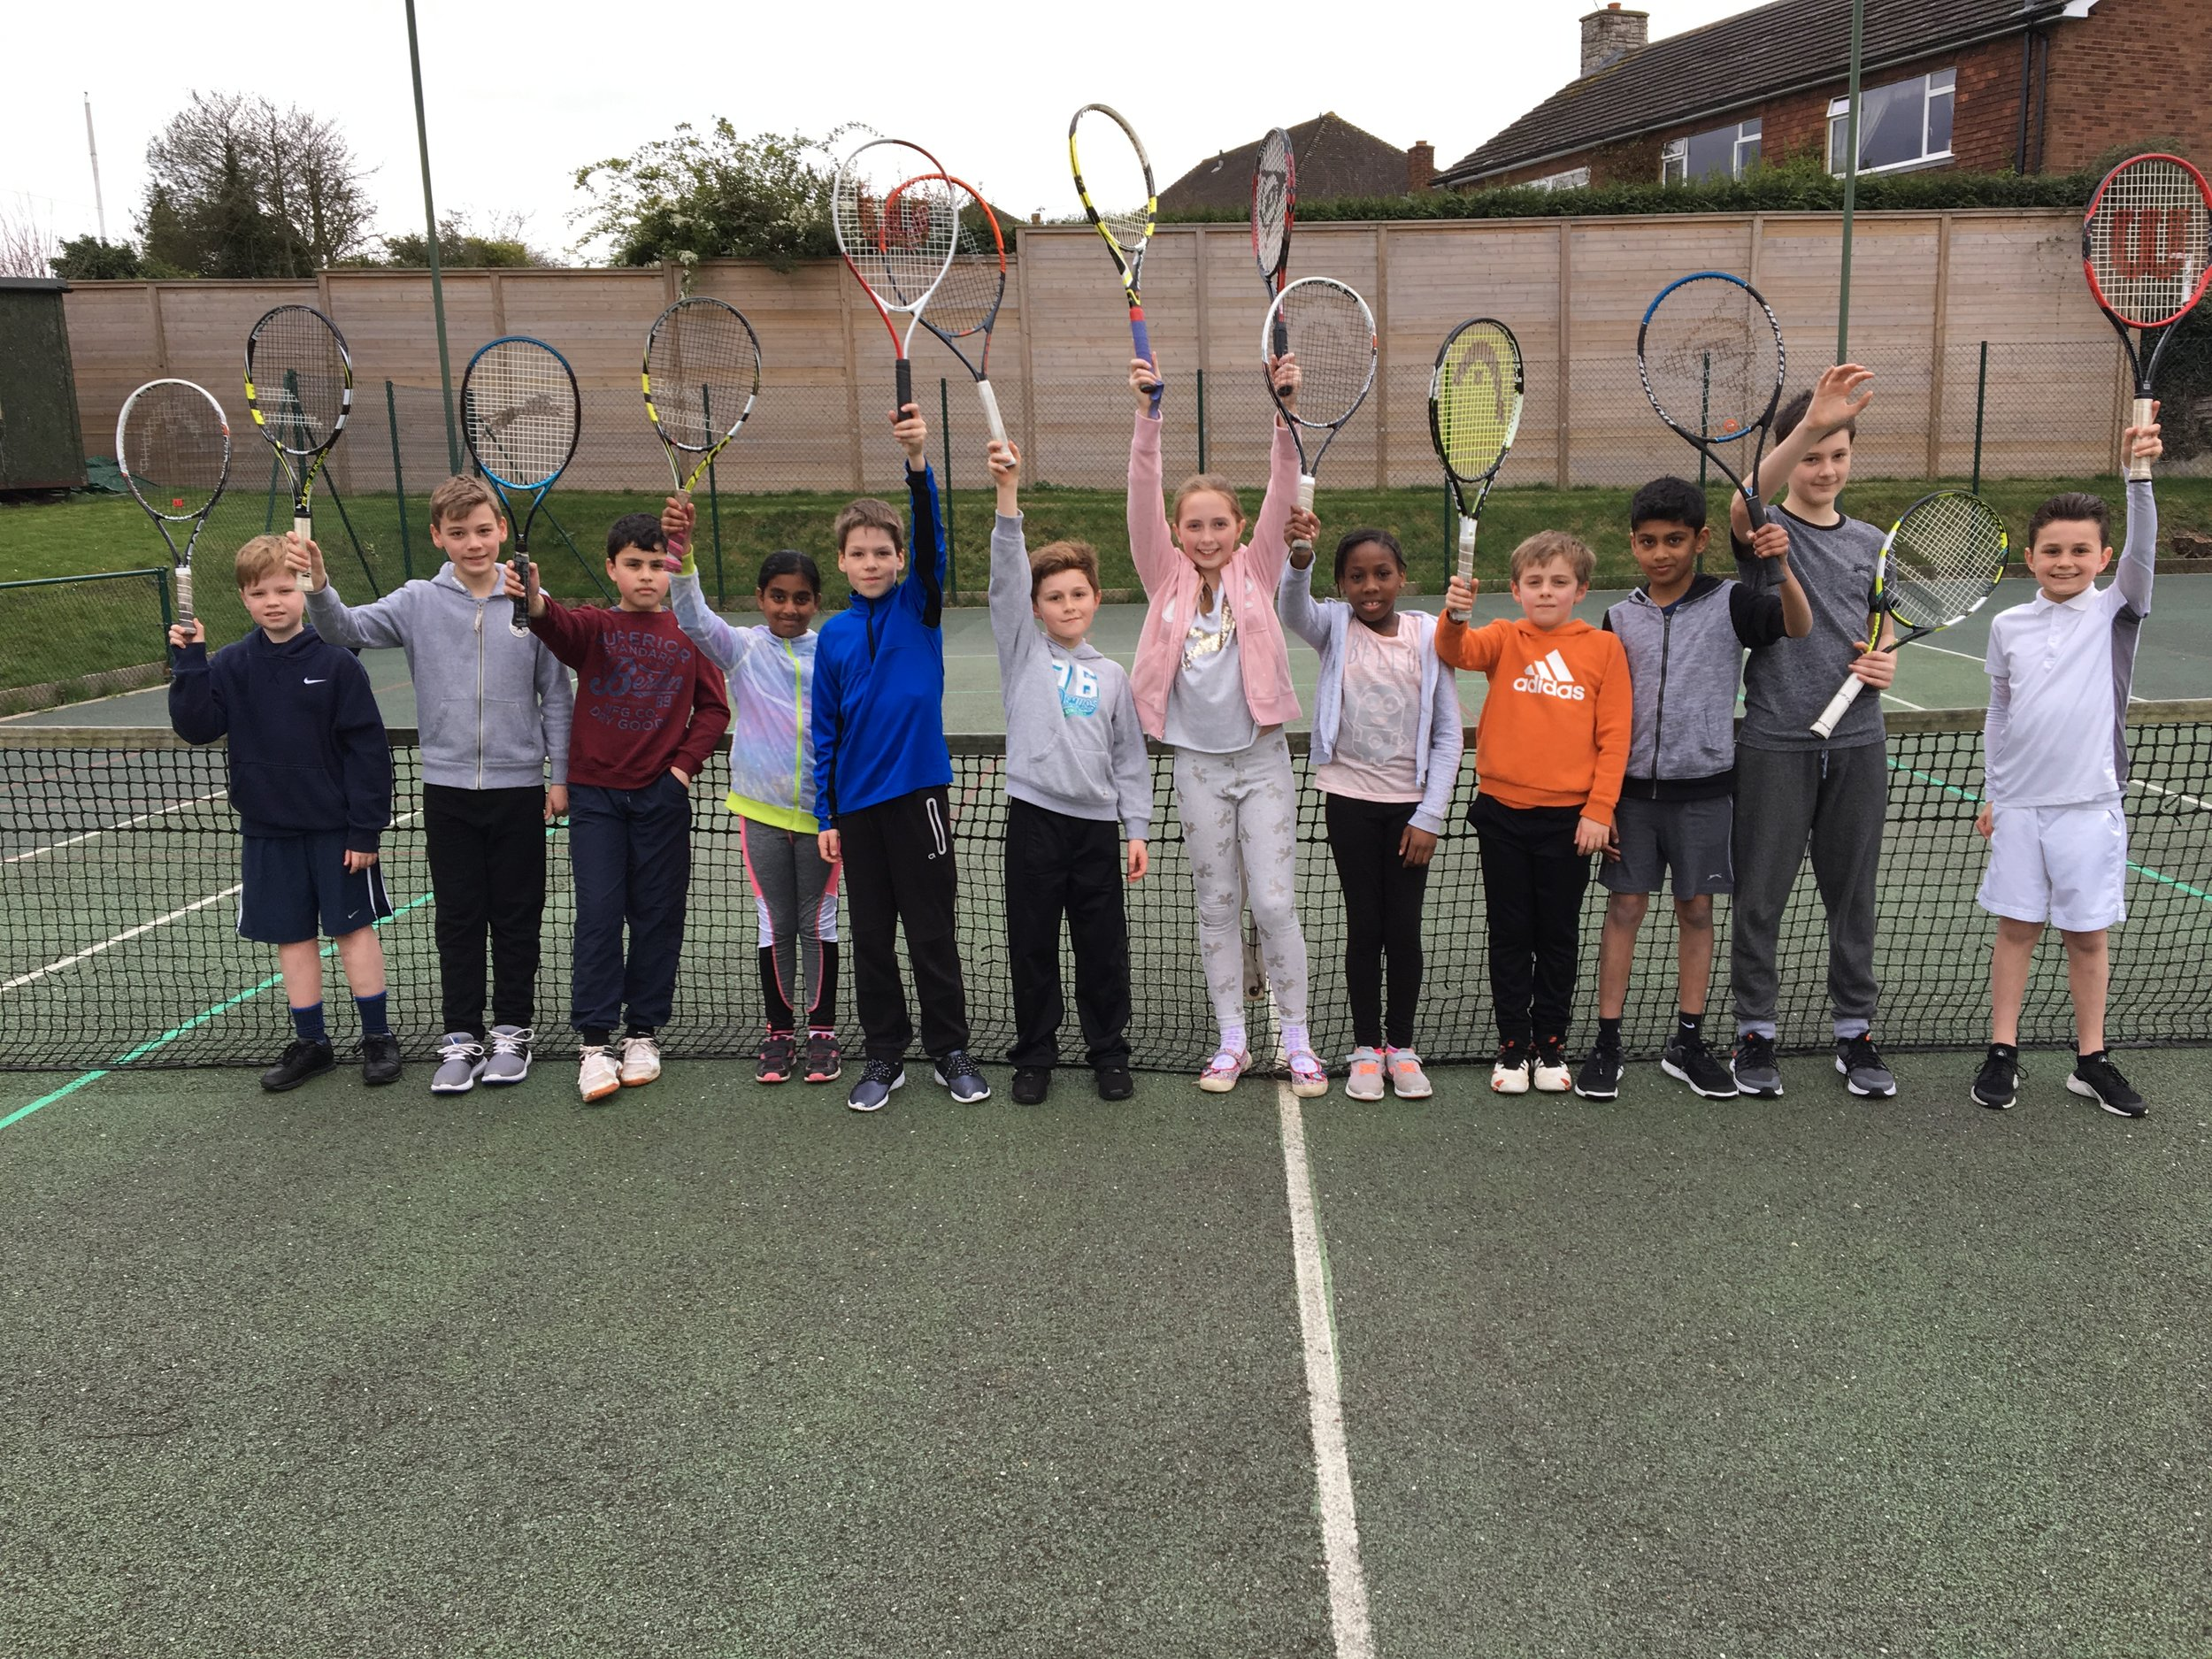 We ran our first Mini Green Matchplay event yesterday afternoon at the Club. For some of them it was their first experience of playing matches. Everyone did really well and the matches were played in great spirits. A special mention to Isaac Holdaway who remained unbeaten all afternoon...well done!! We will be running more of these events after Easter, so watch this space!